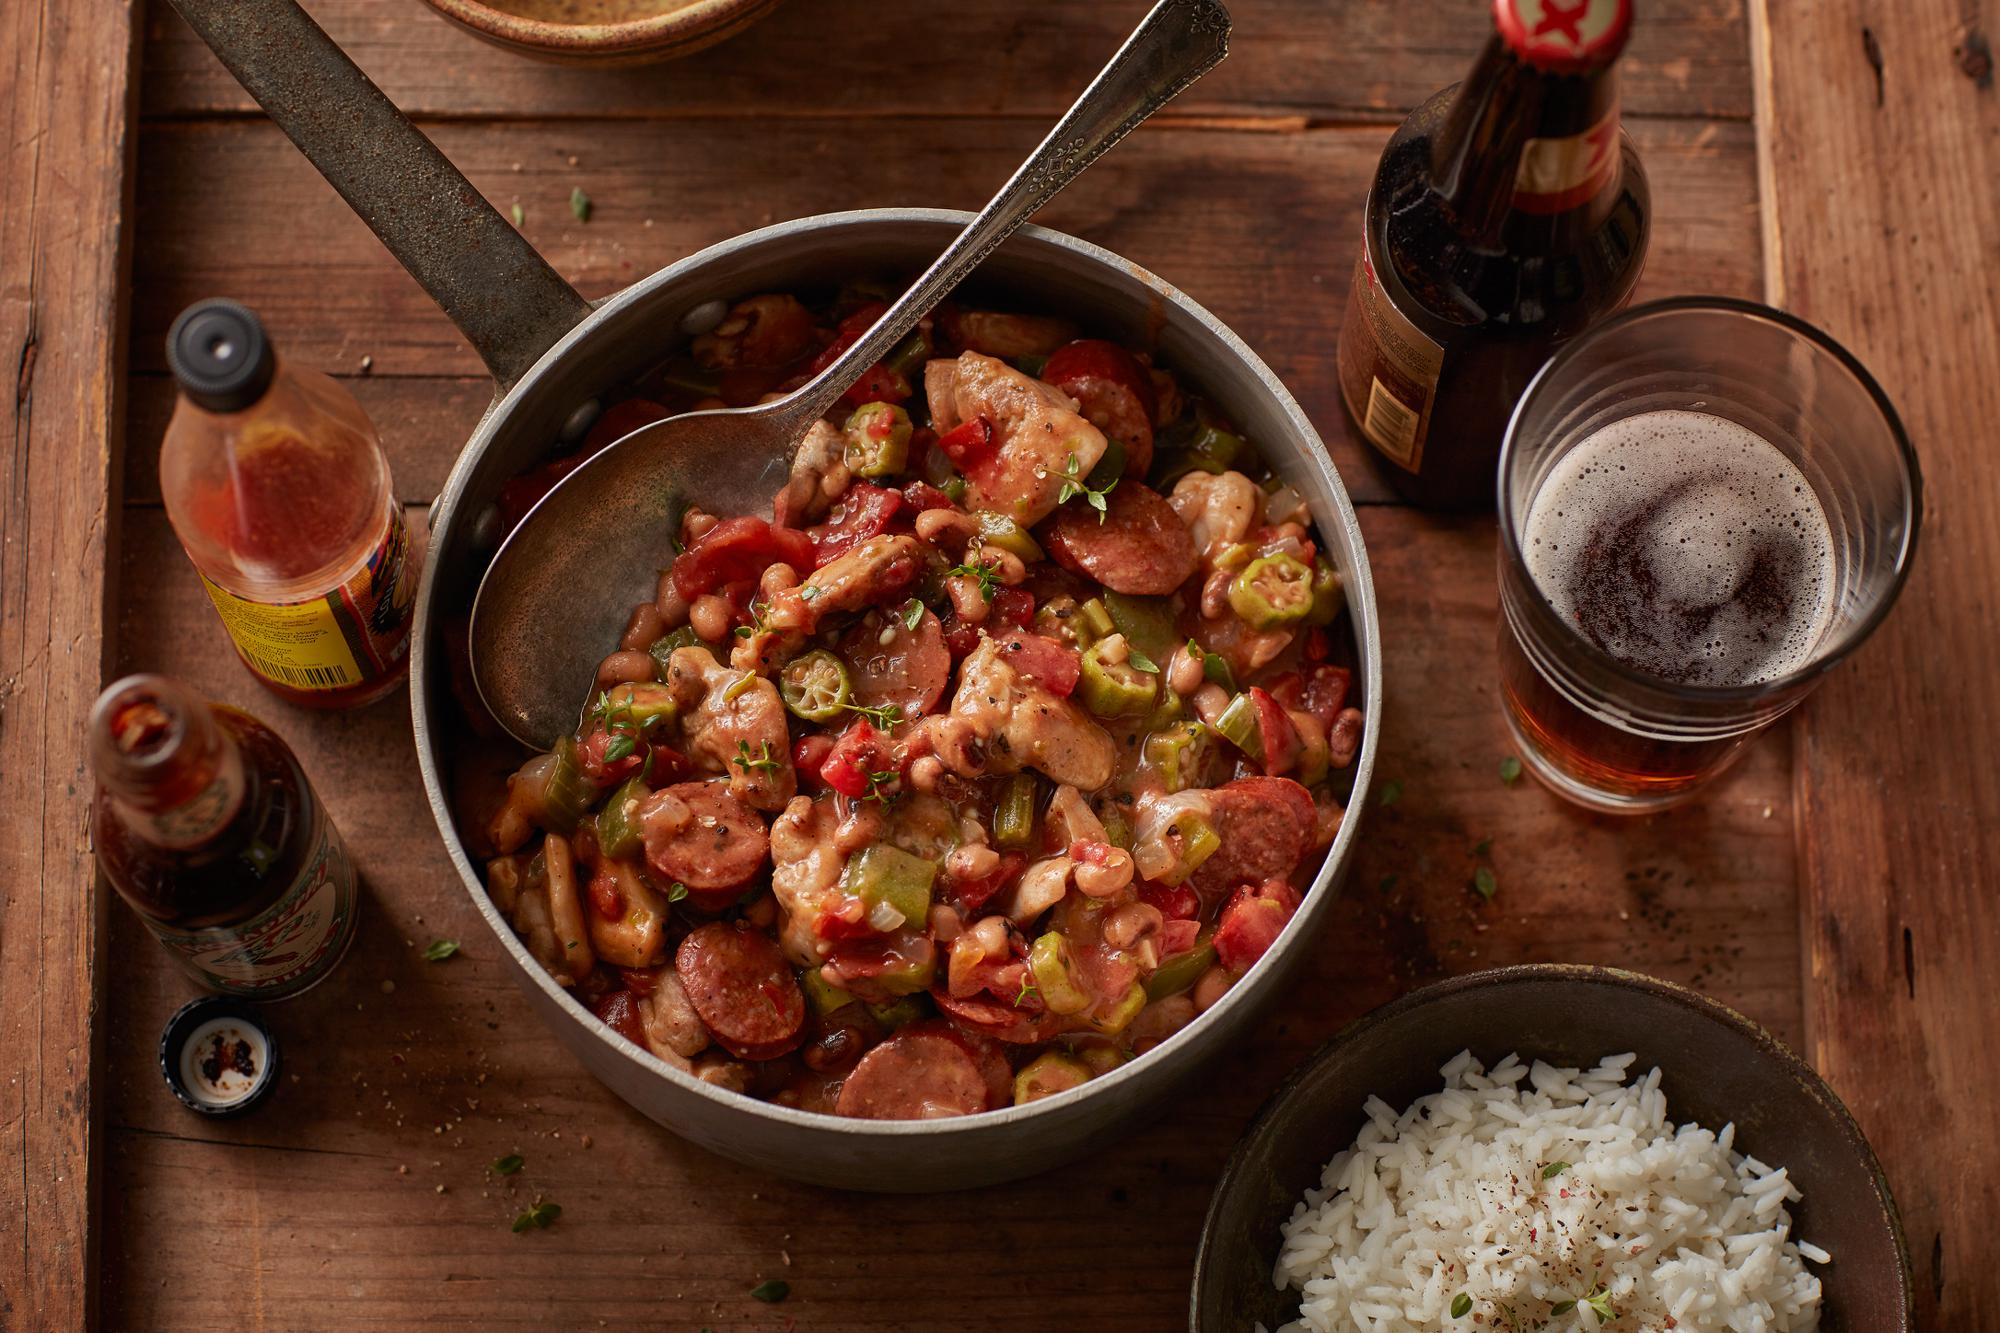 Creole Chicken & Sausage Gumbo